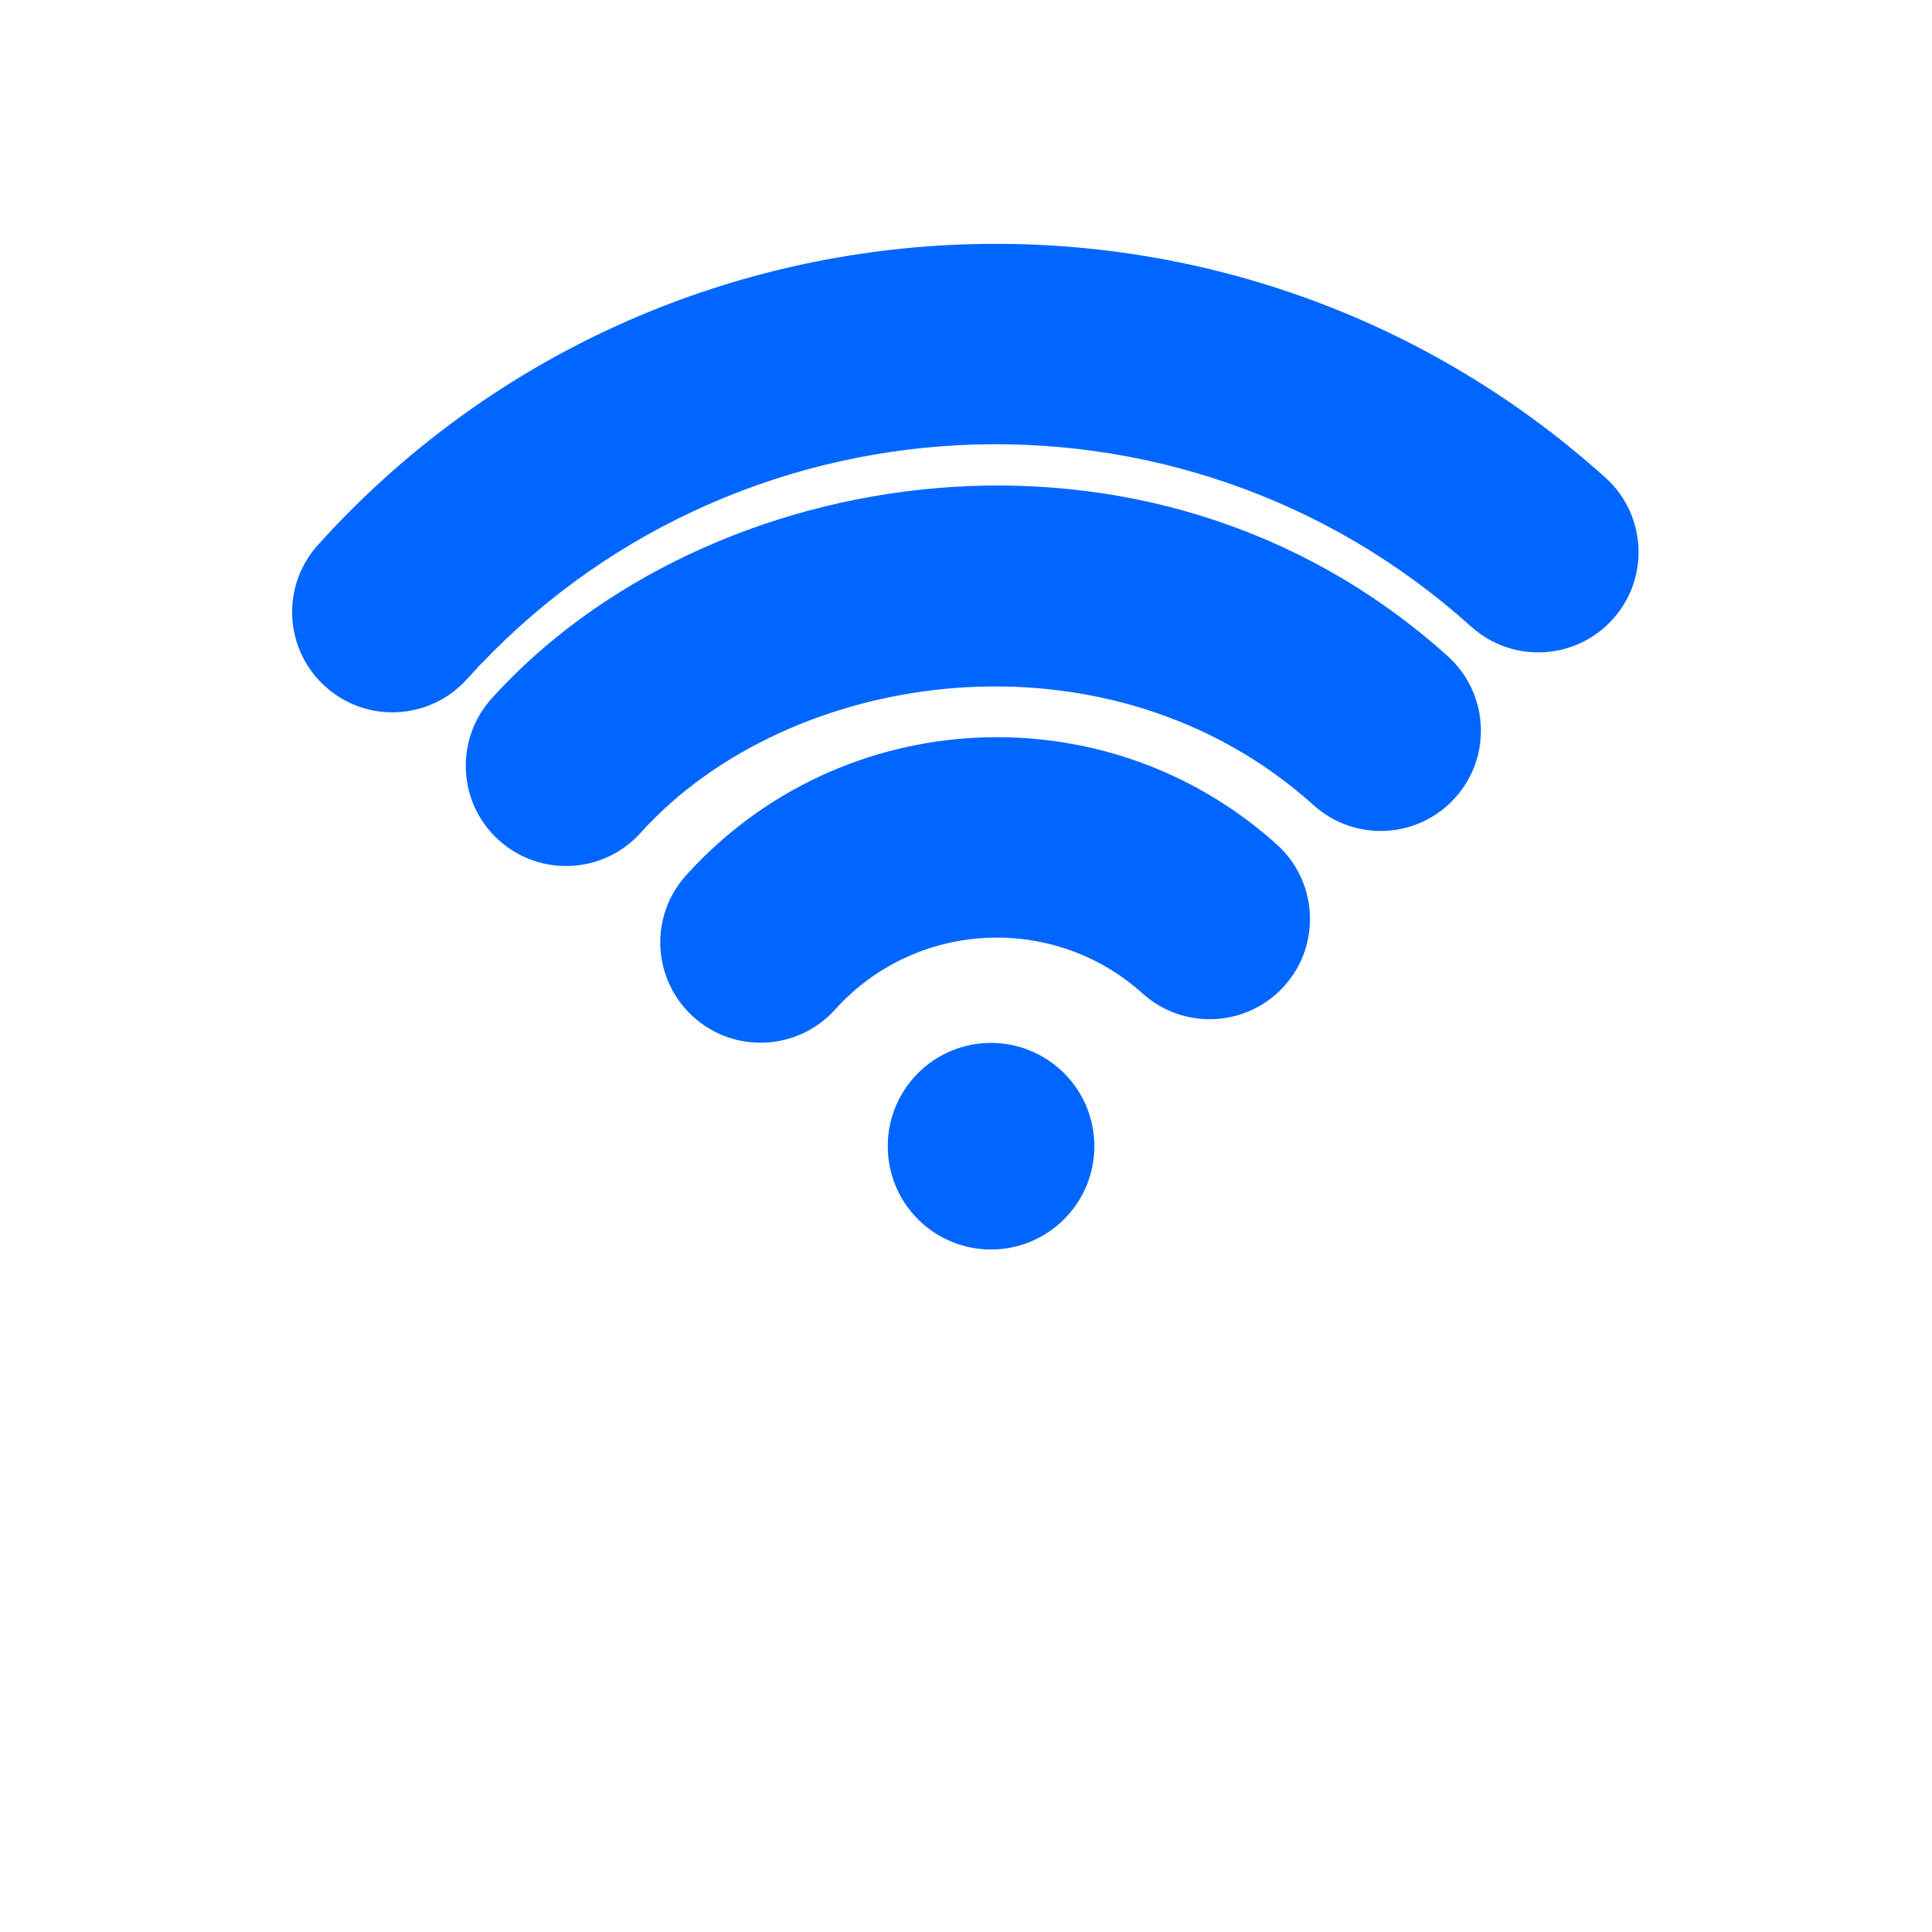 Wi-fi Clipart - ClipArt Best - ClipArt Best